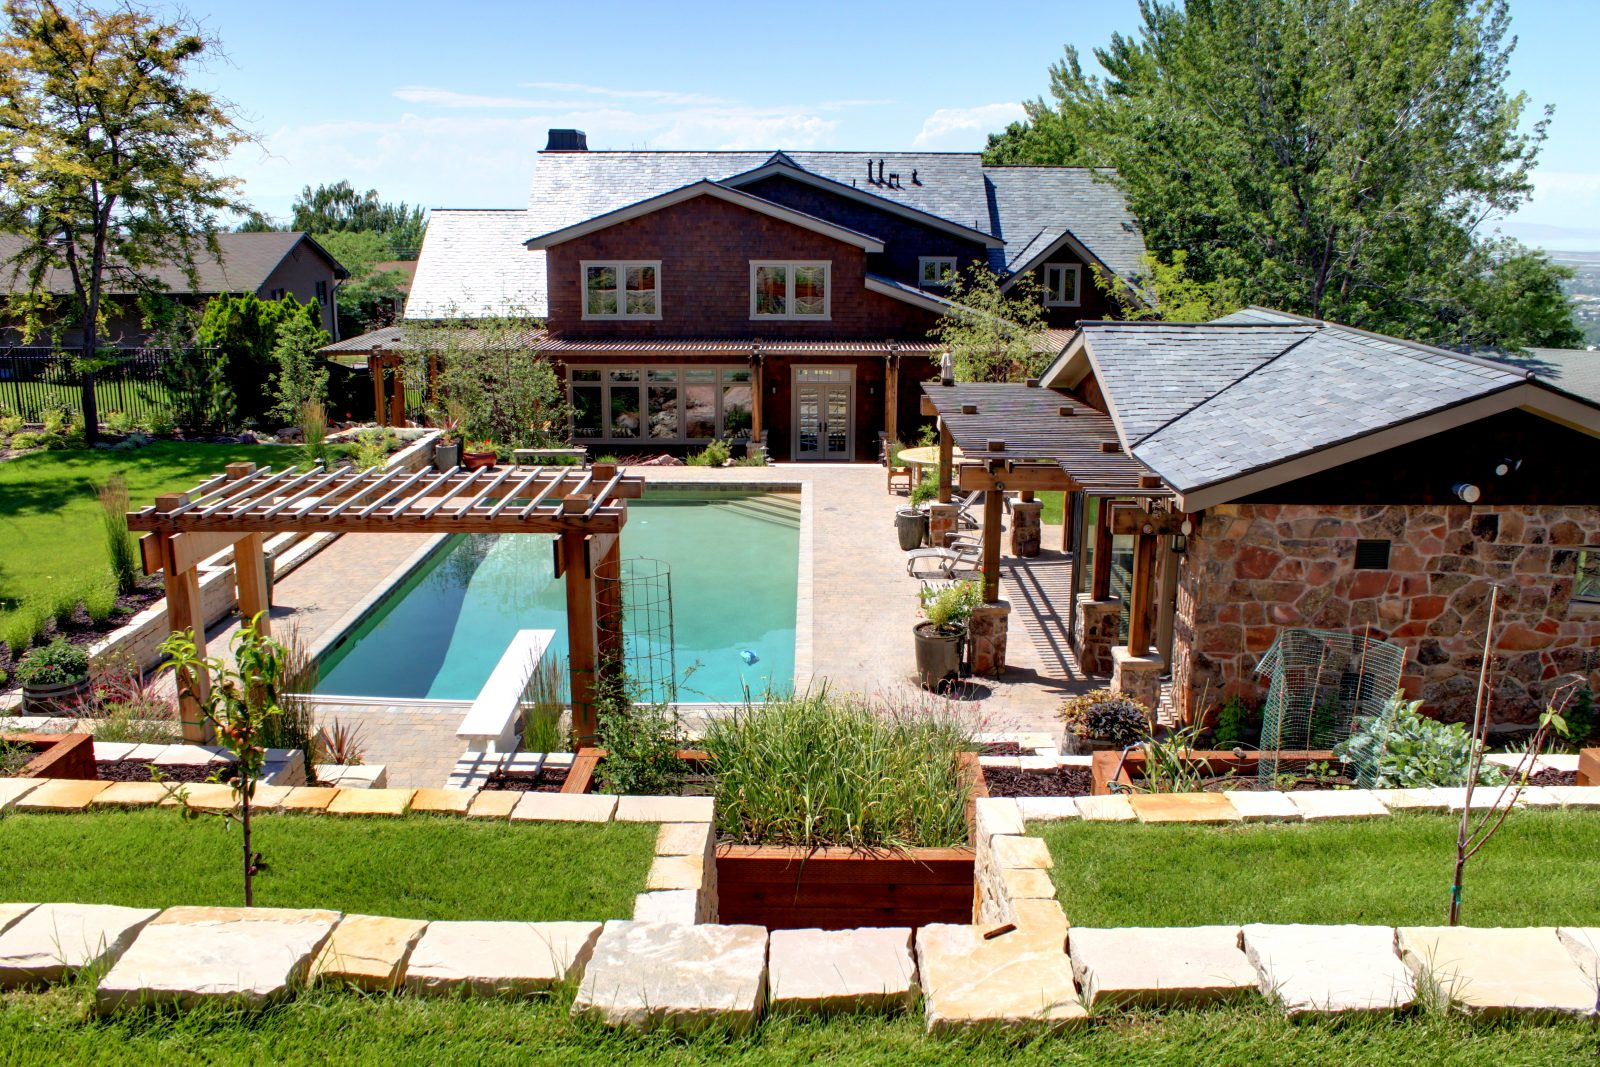 After_Exterior-Update_Water-Feature_Swimming-Pool-Renovation | Renovation Design Group